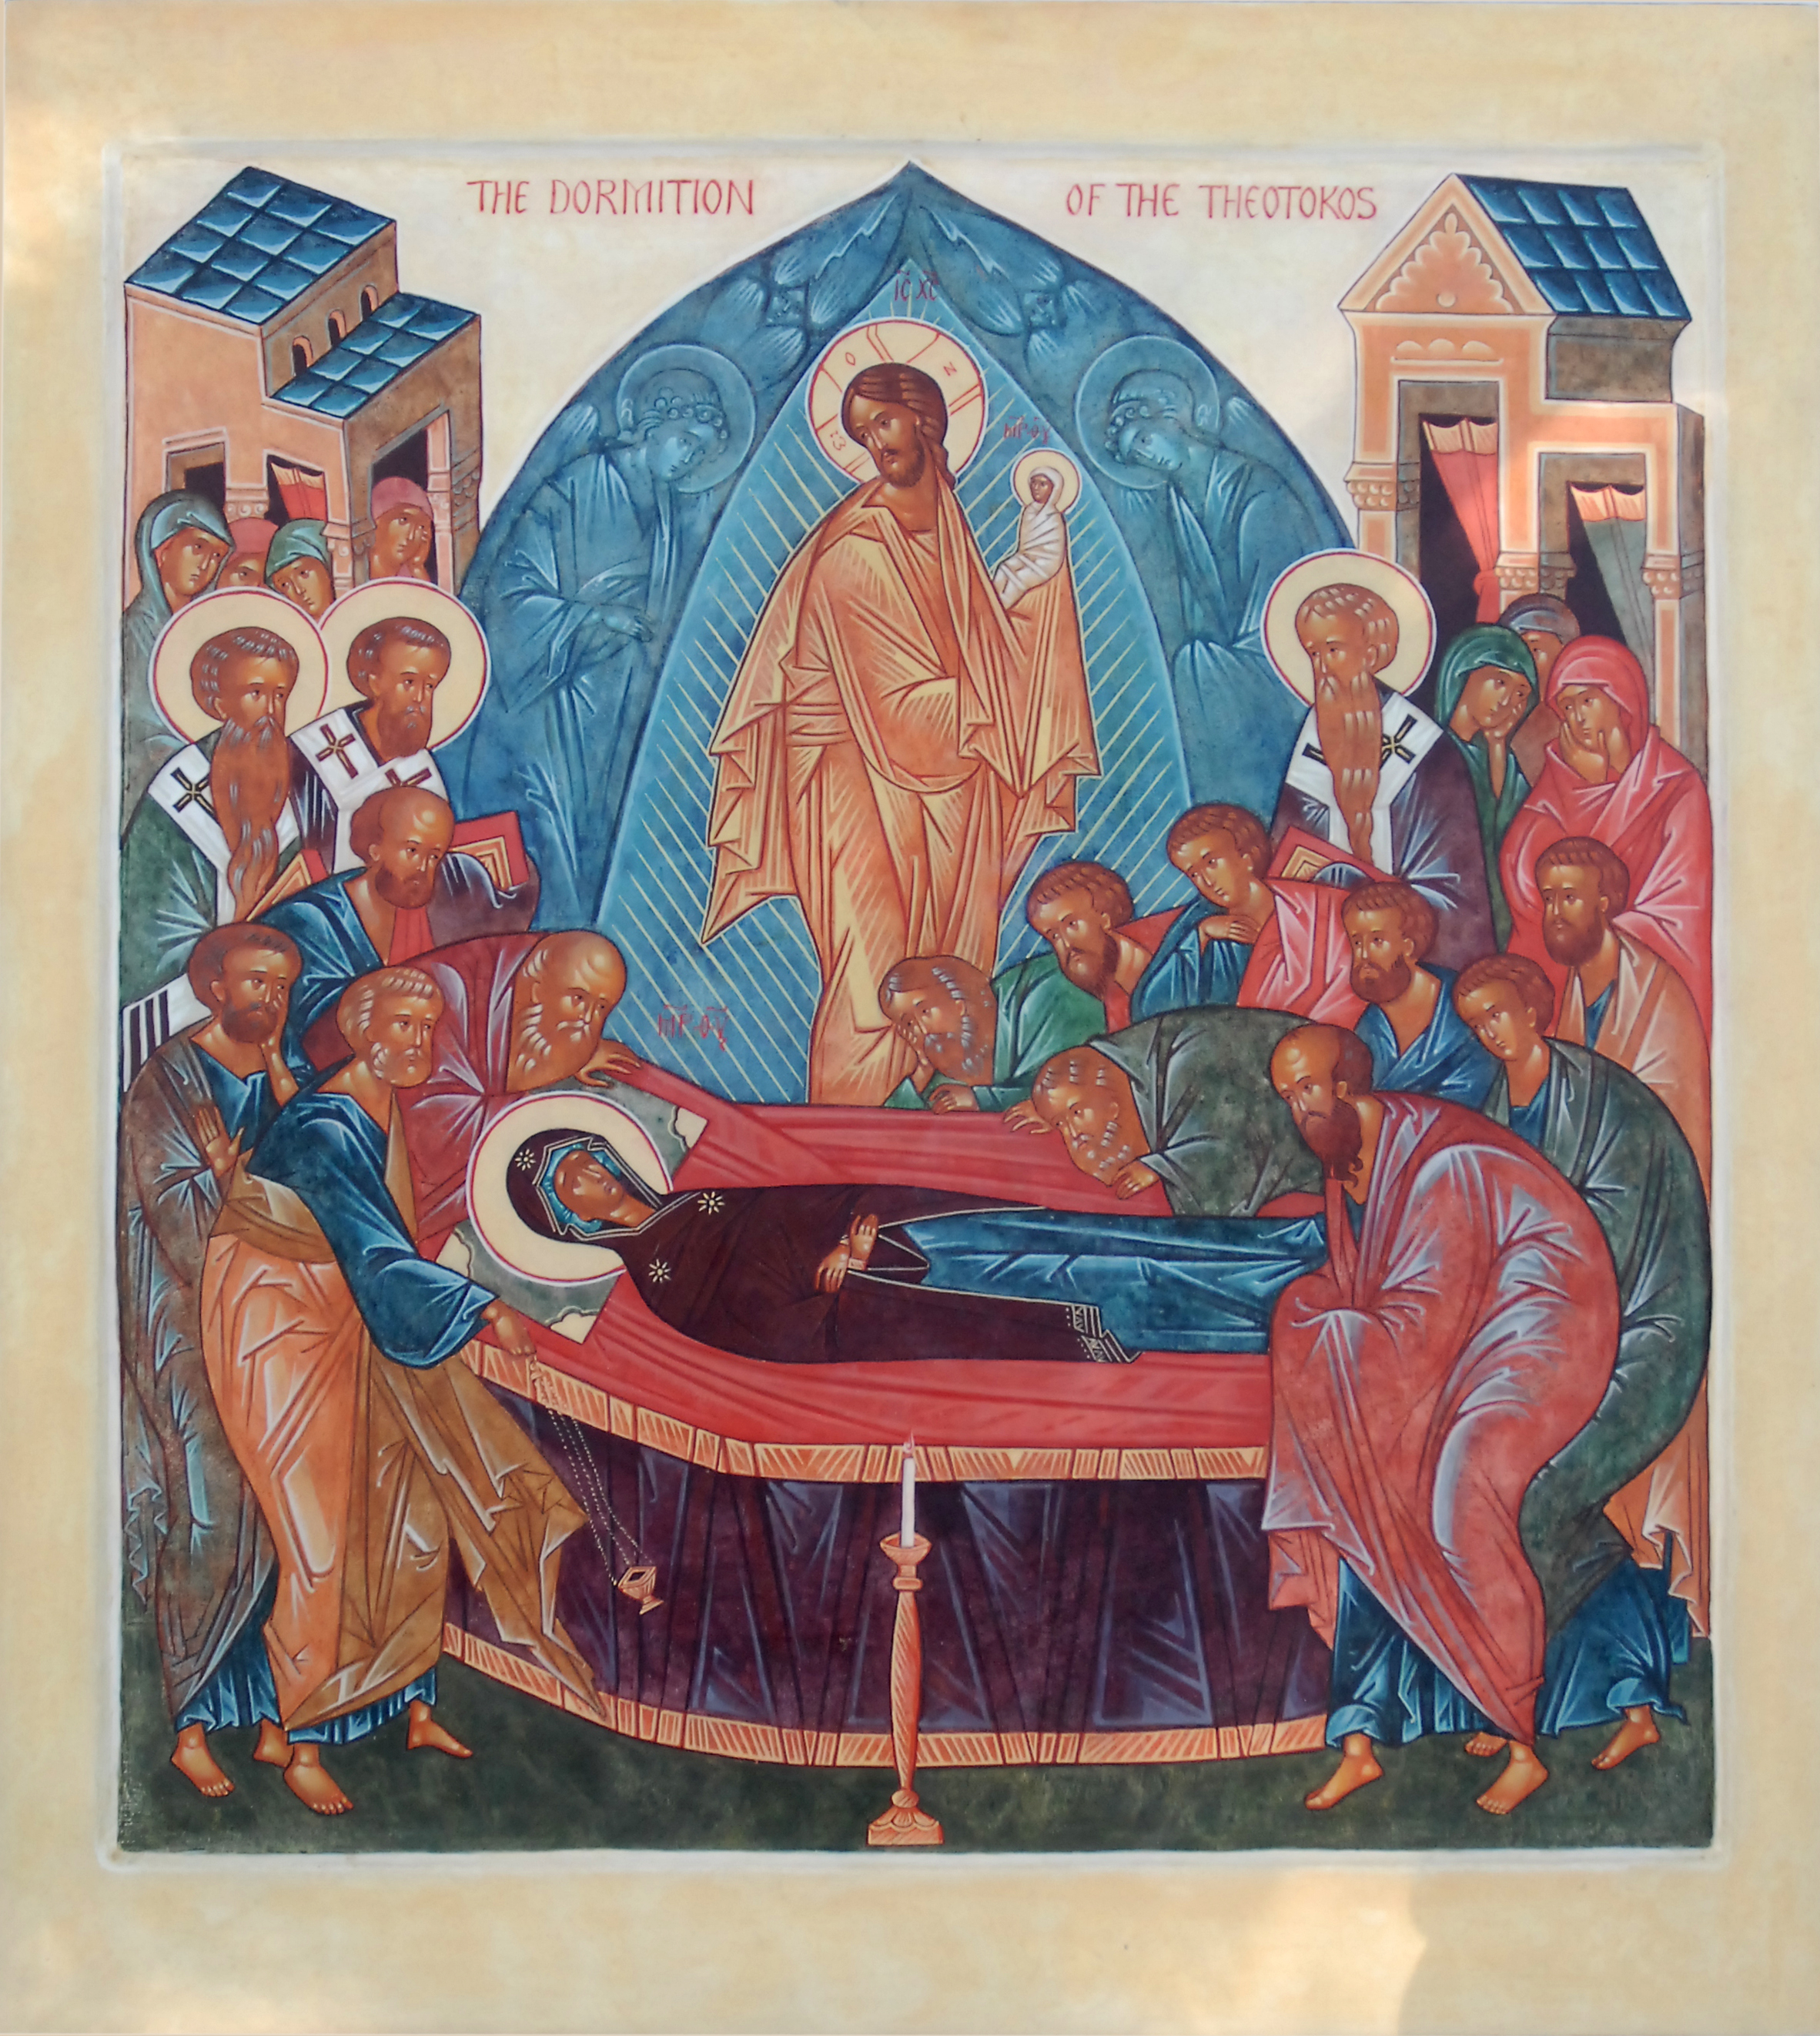 August 15, 2016 </br>The Dormition of the Most Holy Lady, the Theotokos and Ever-Virgin Mary